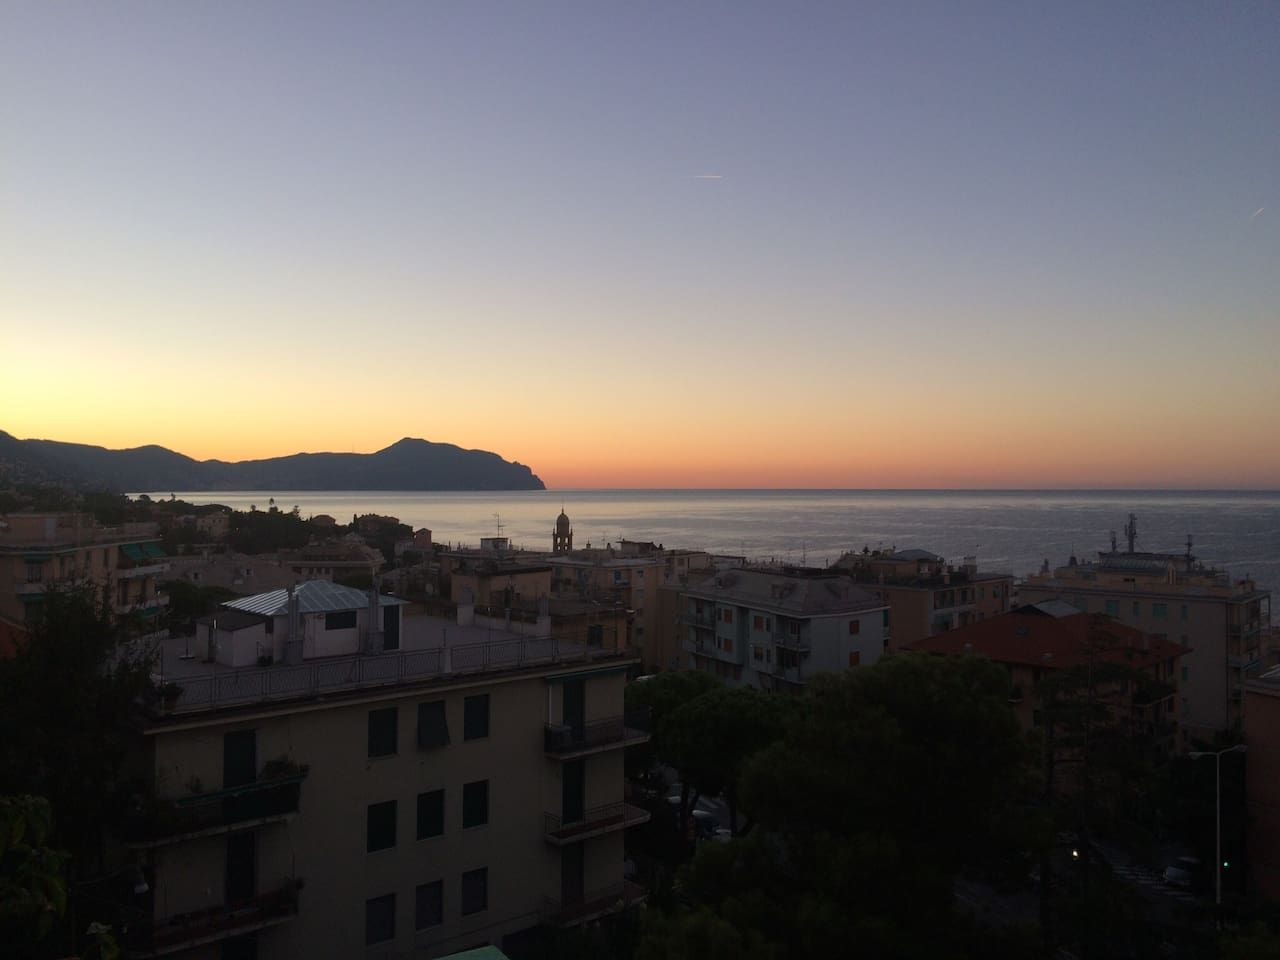 View of Sunrise  over Portofino from Bedroom window. Also available from balcony in lounge